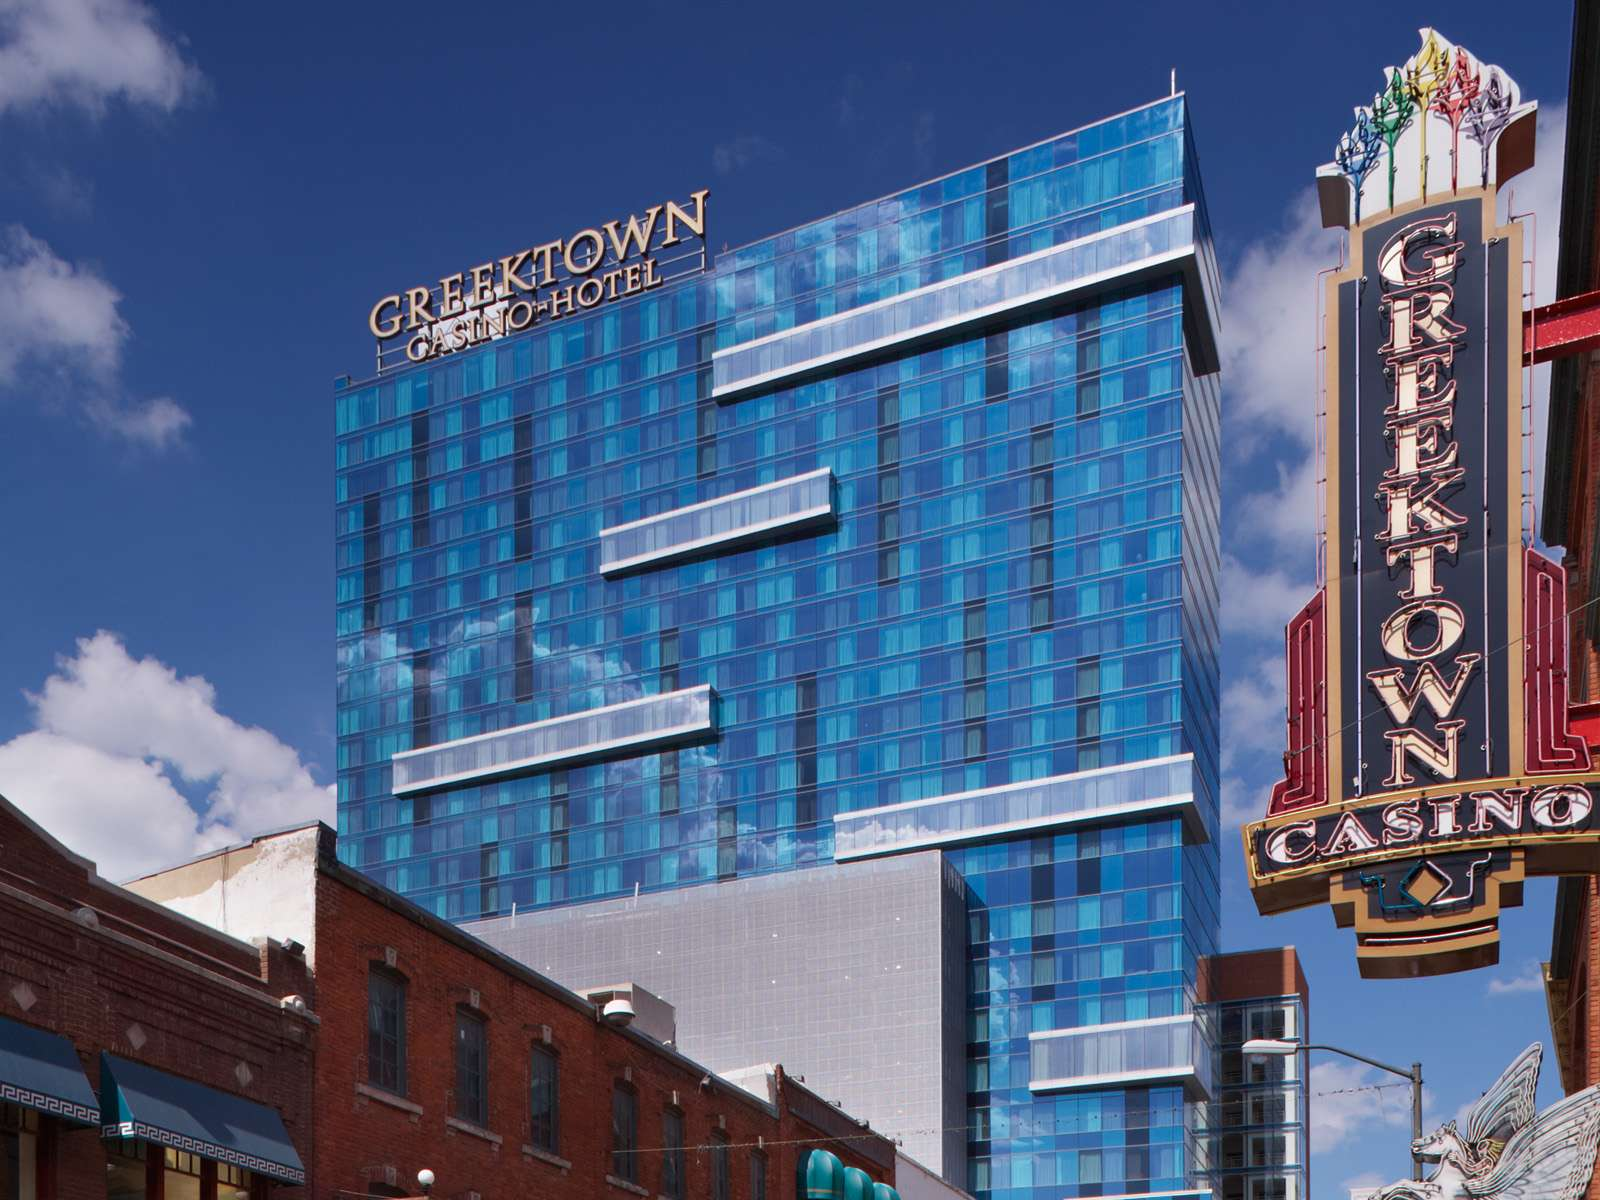 Hotel greektown casino no cd crack for casino empire